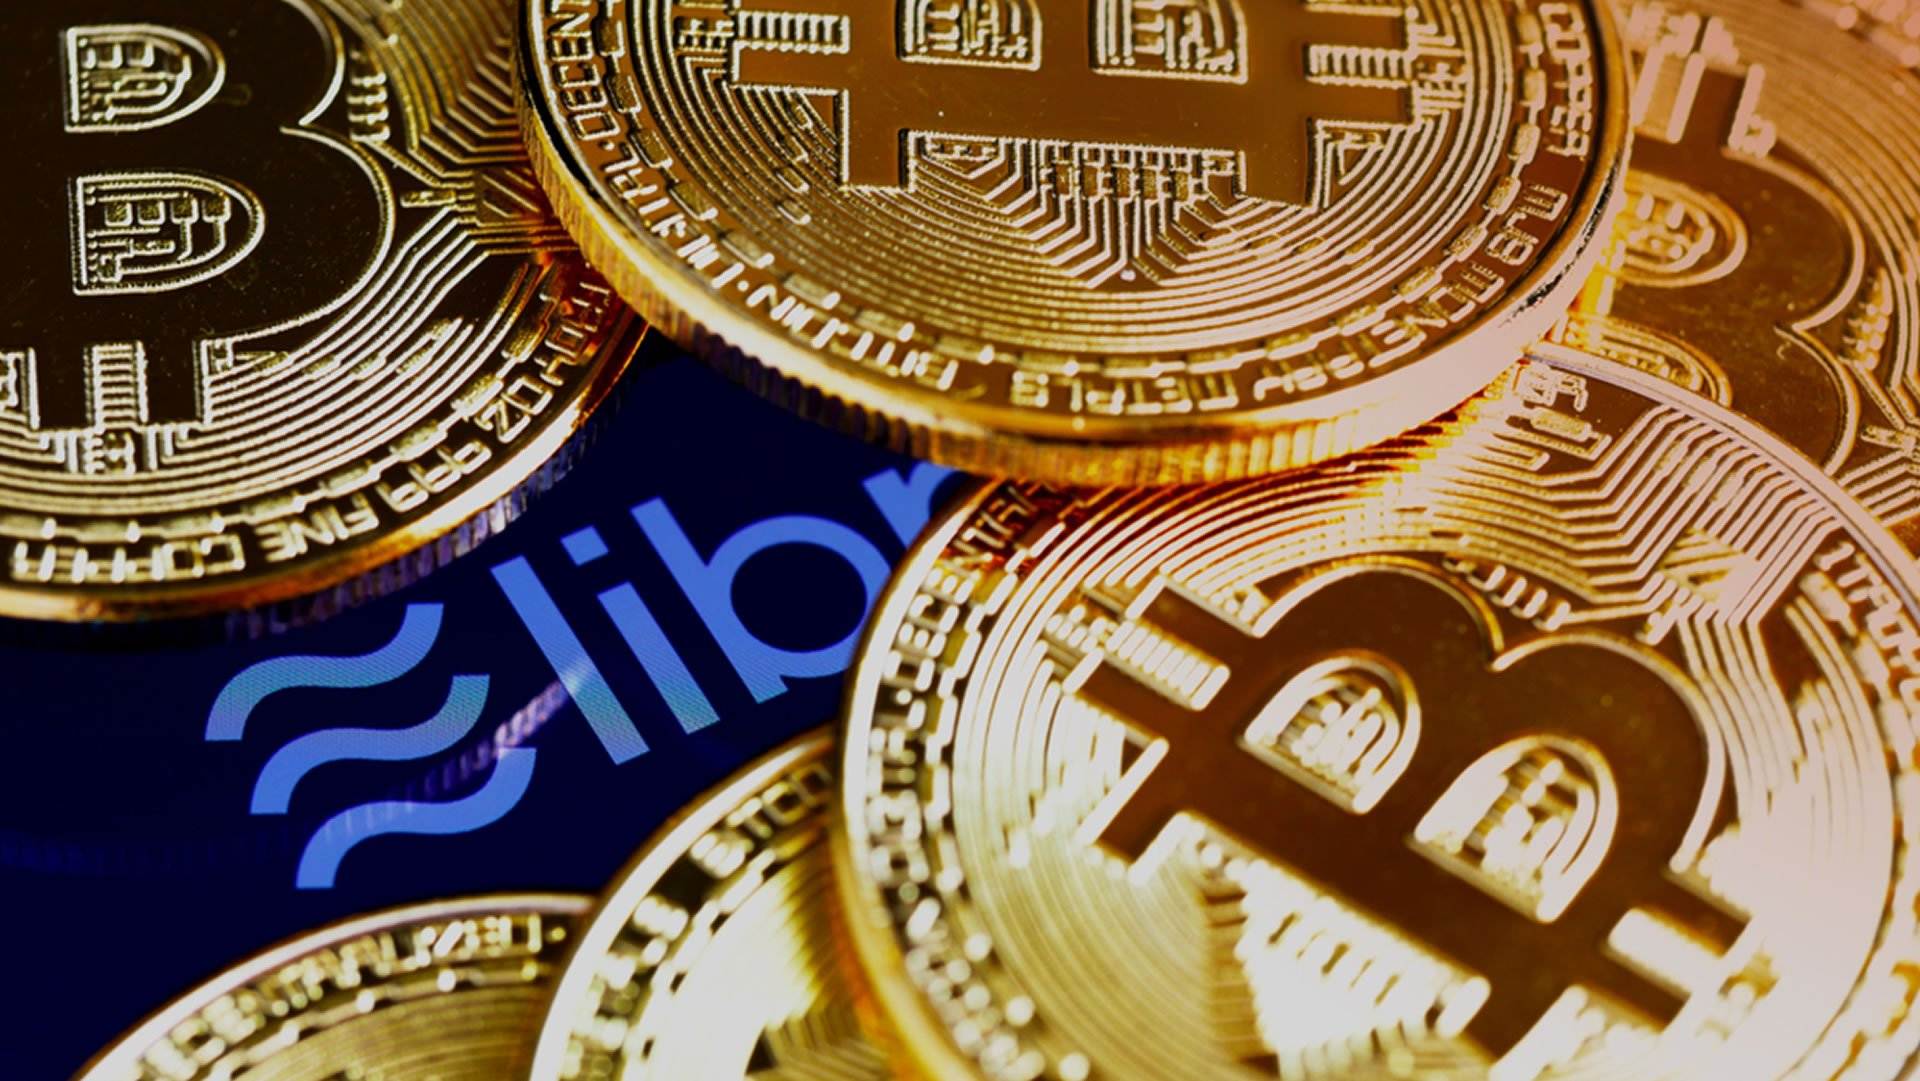 Pressure on Libra From U.S. Intensifies as Congressman Suggests Bitcoin Instead